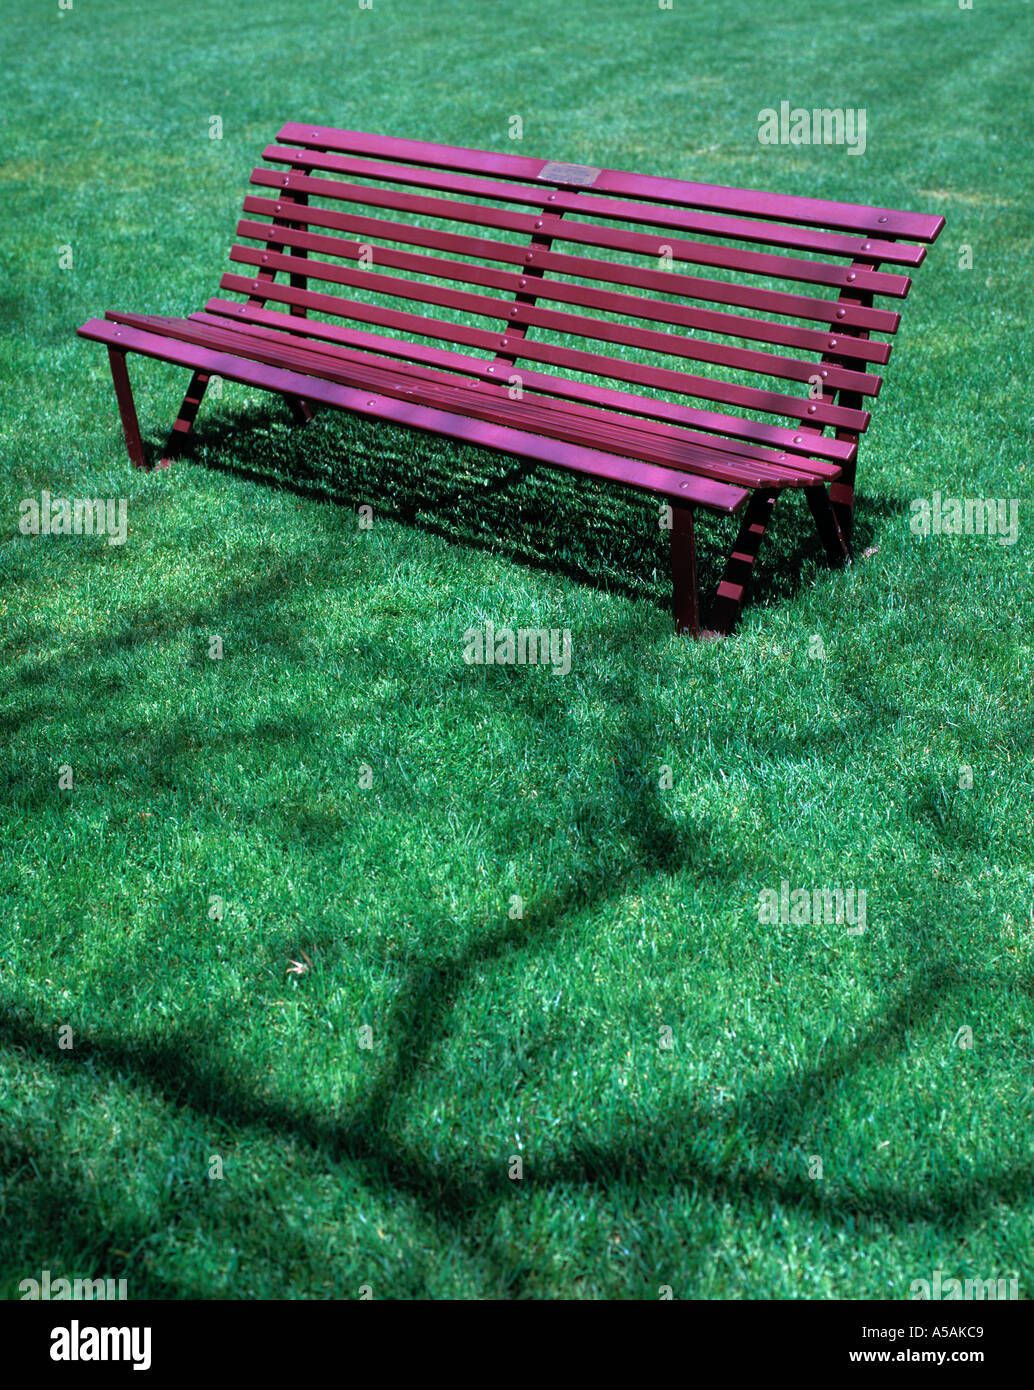 View of a empty park bench on a patch of vivid green grass - Stock Image